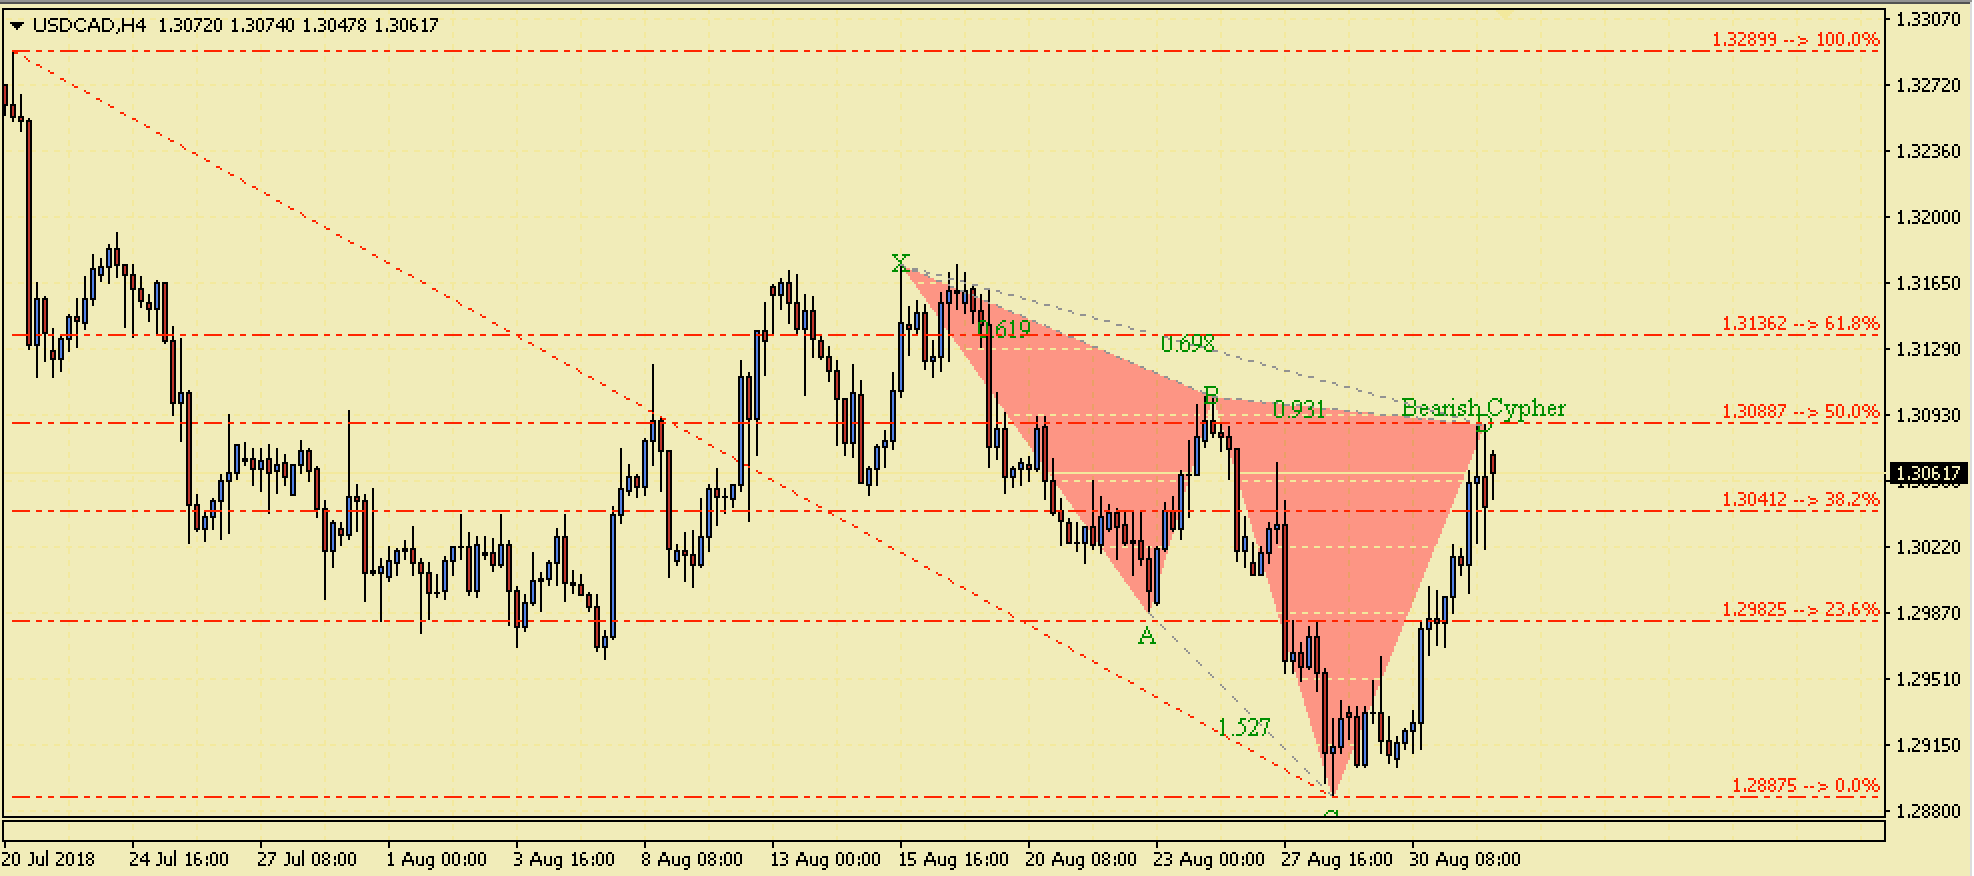 USDCAD Bearish Cypher Harmonic Pattern – 2nd Sept 2018